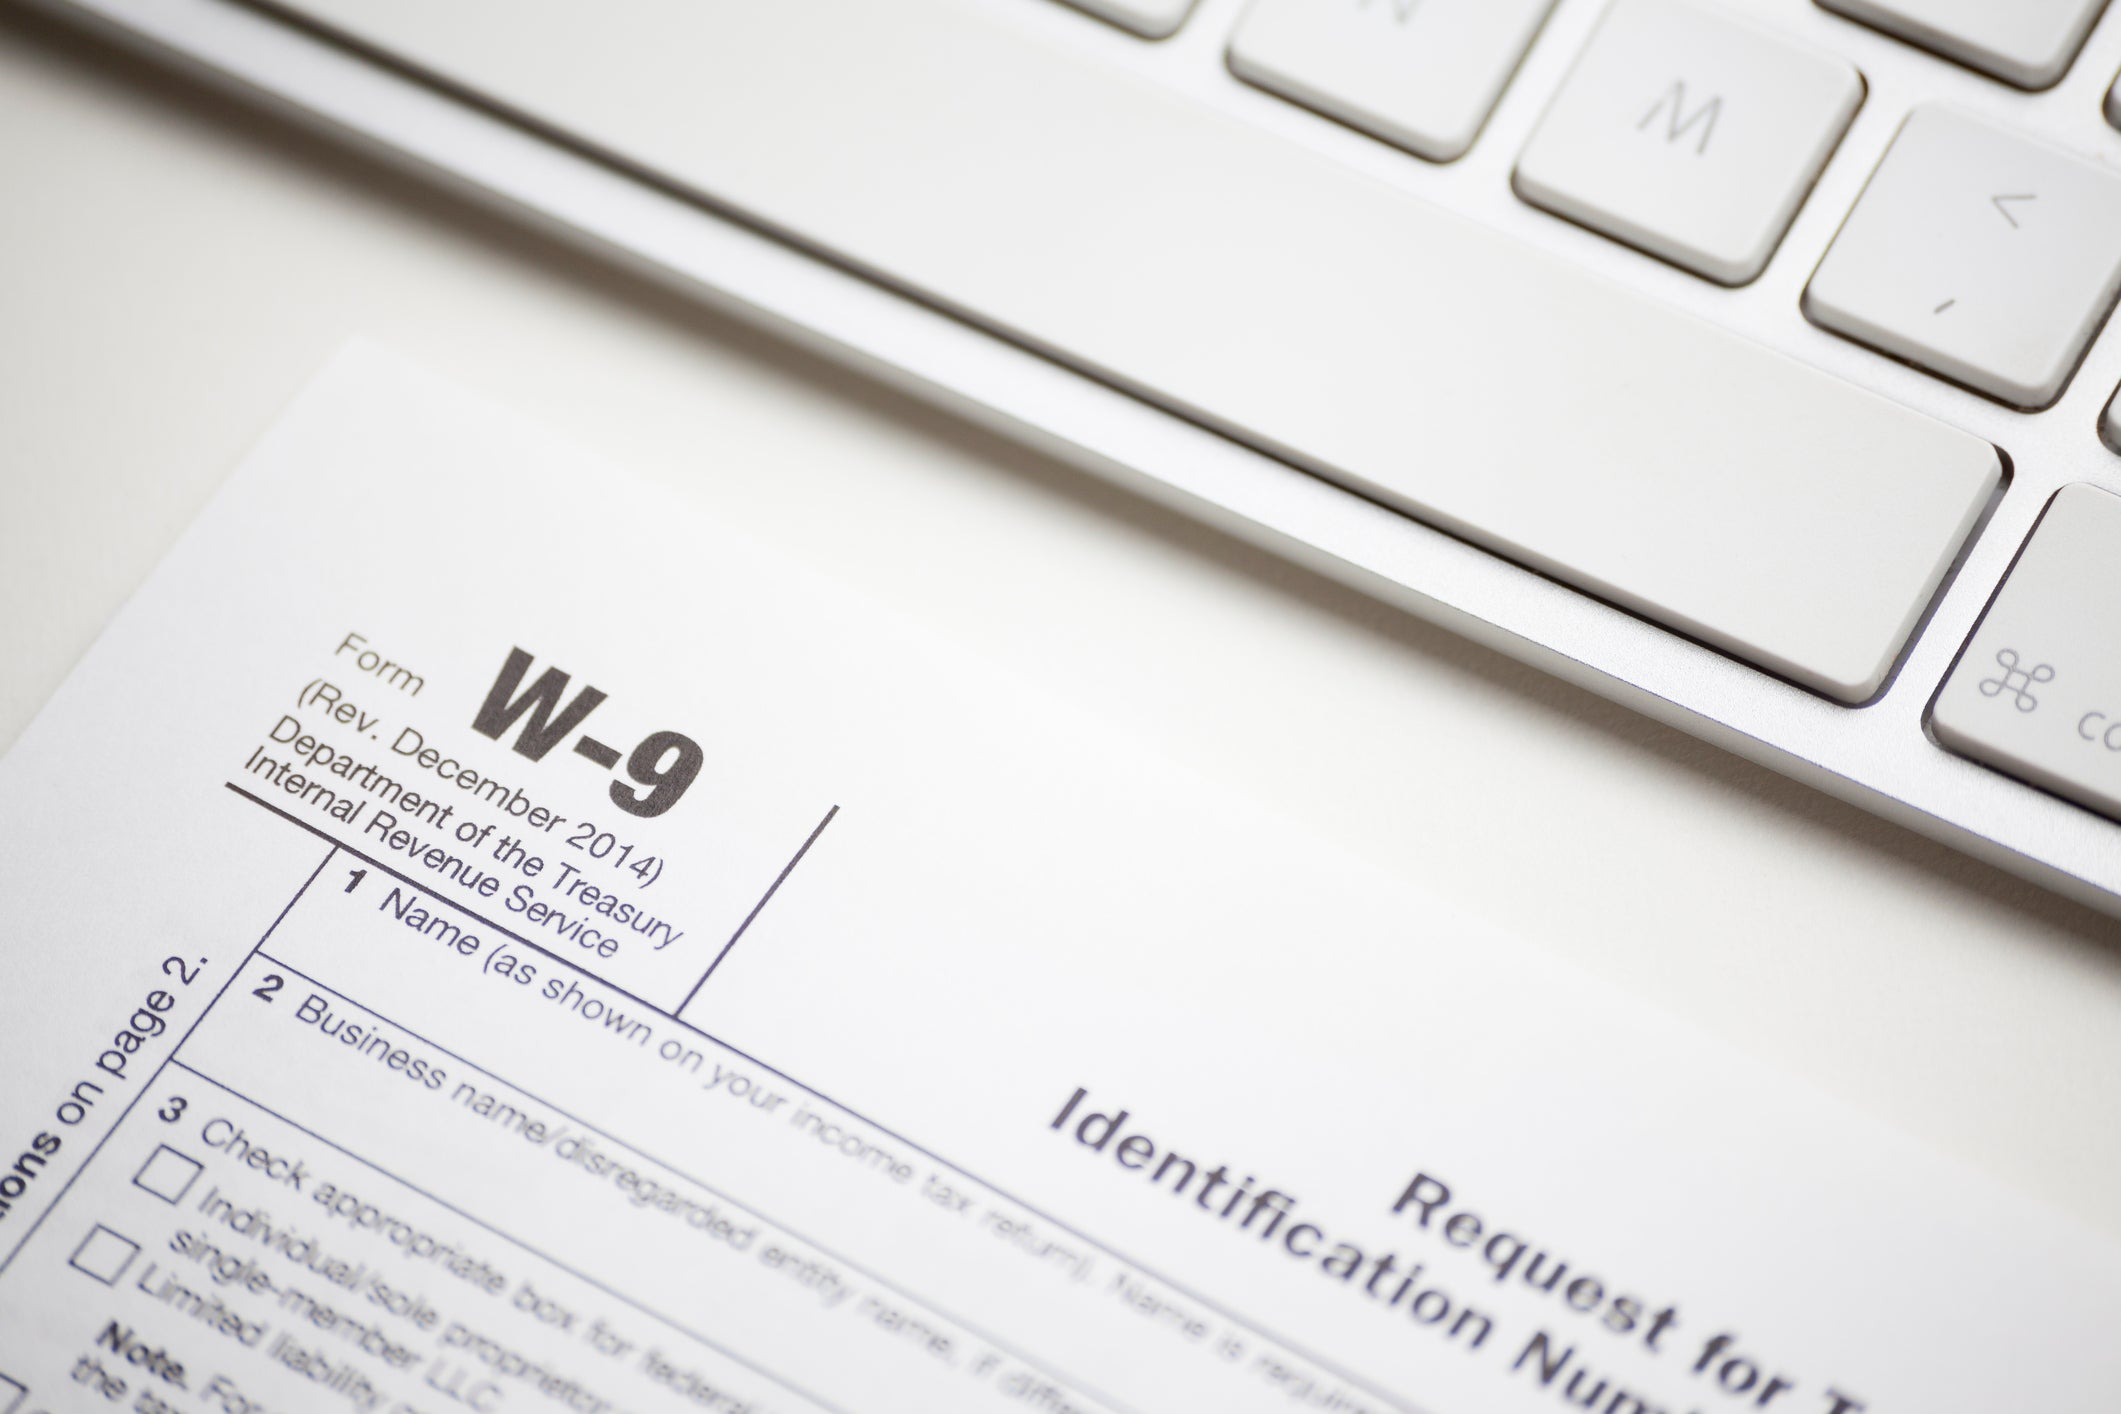 What Is a W-9 Form and Why Do I Need to Complete It? -- The Motley Fool